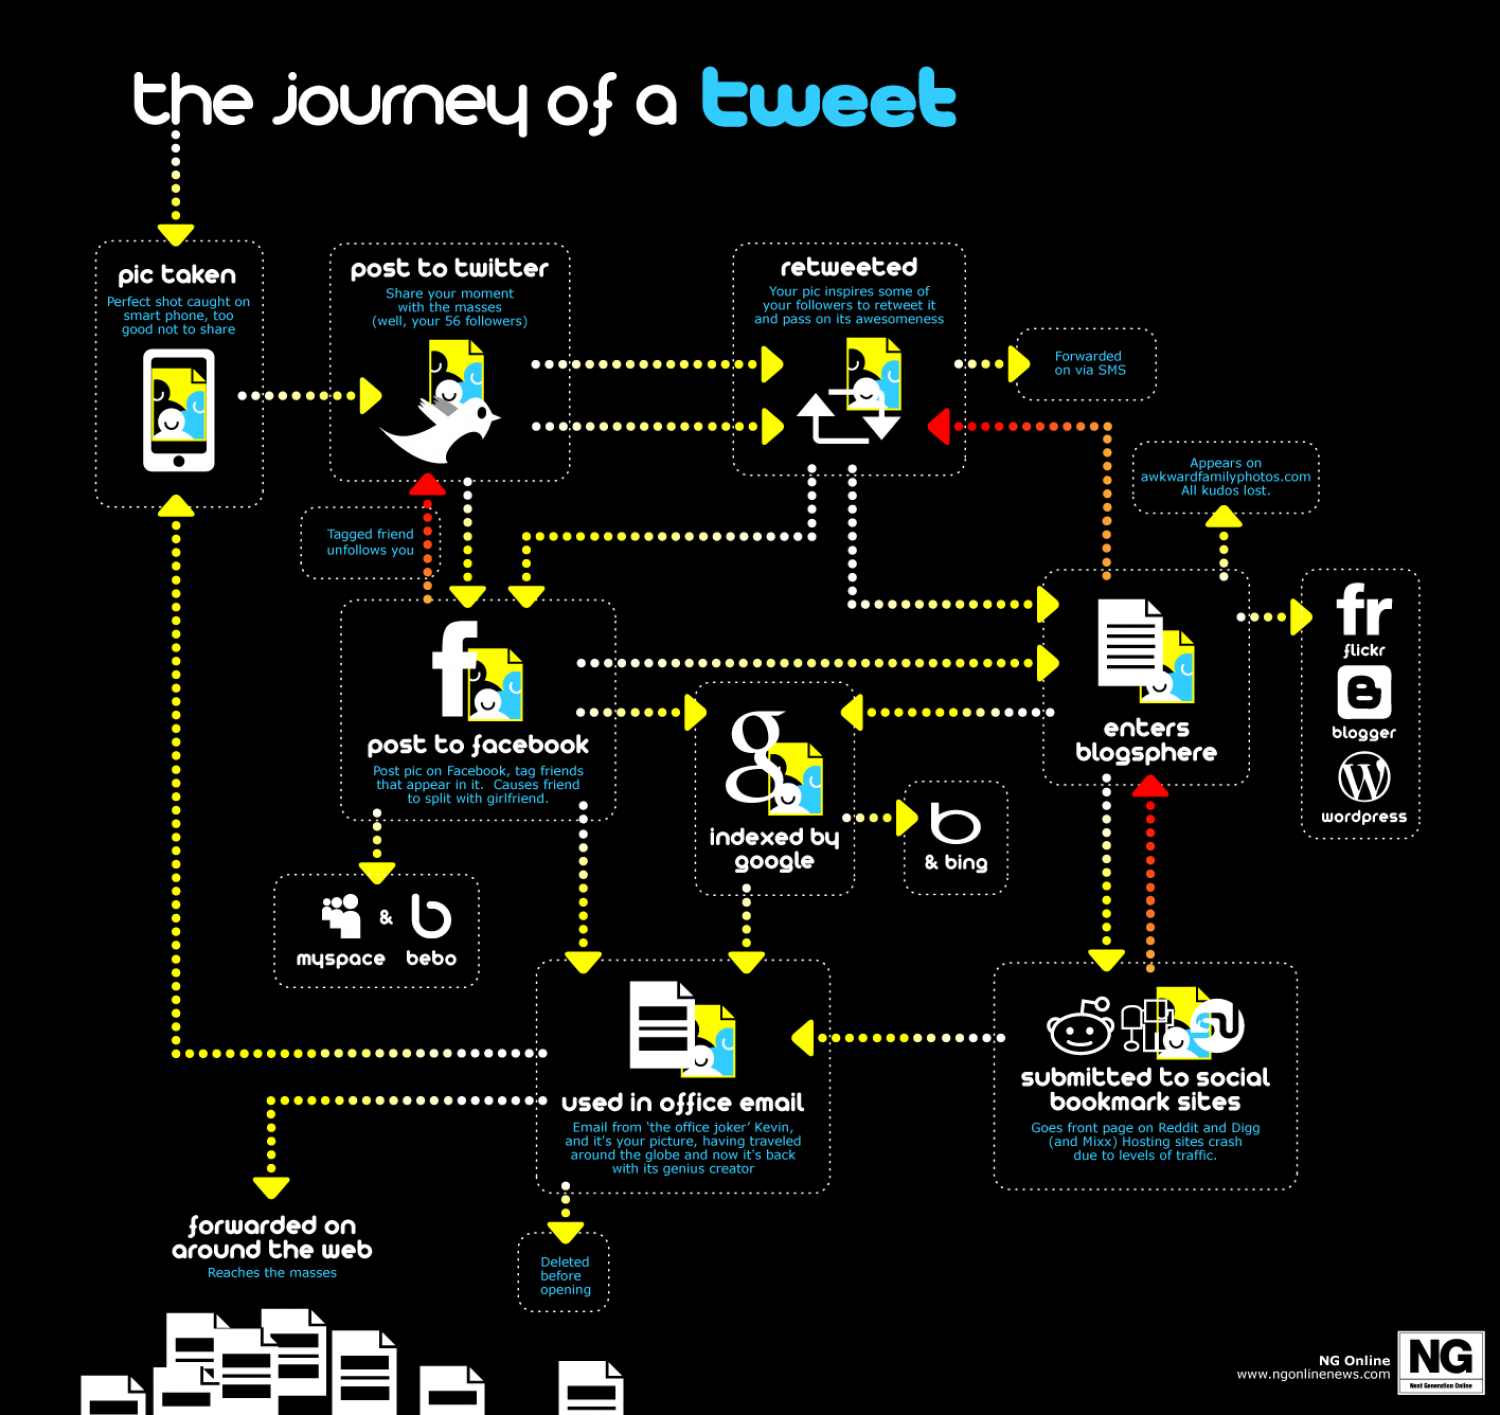 The Journey of a Tweet Infographic